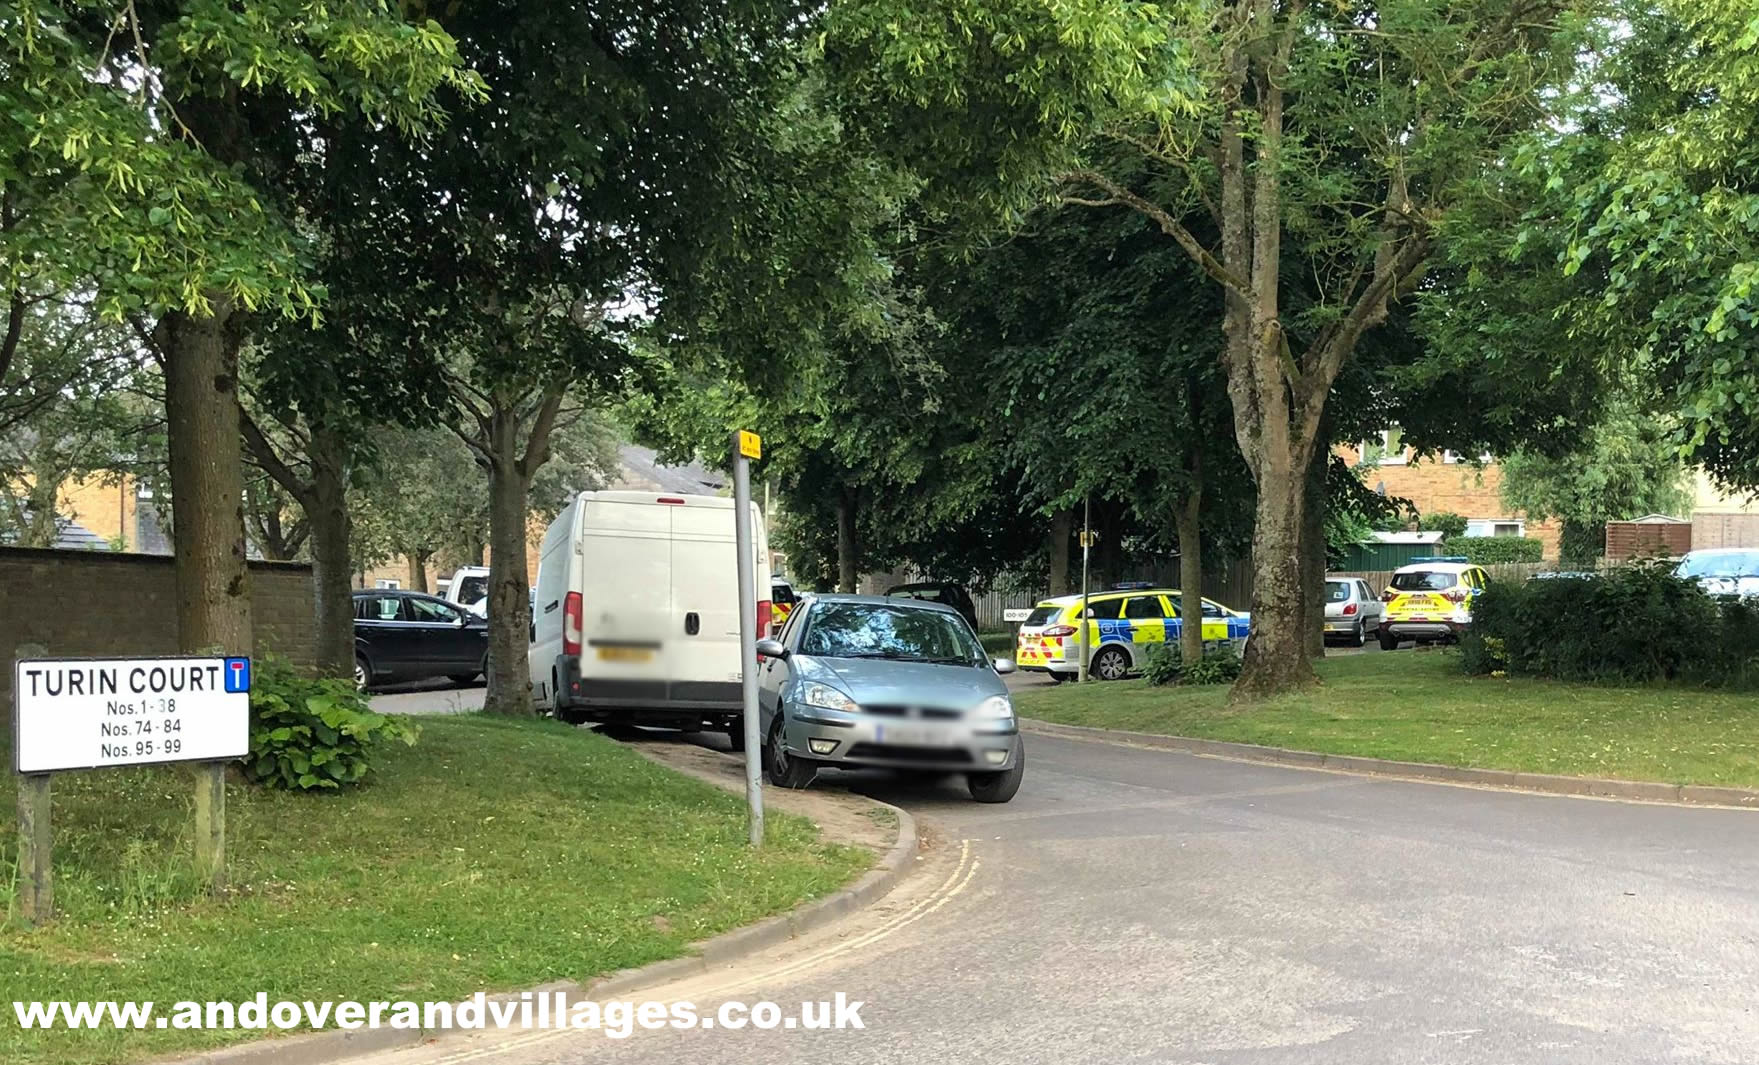 Serious Assault Leads to Death on Andover Estate